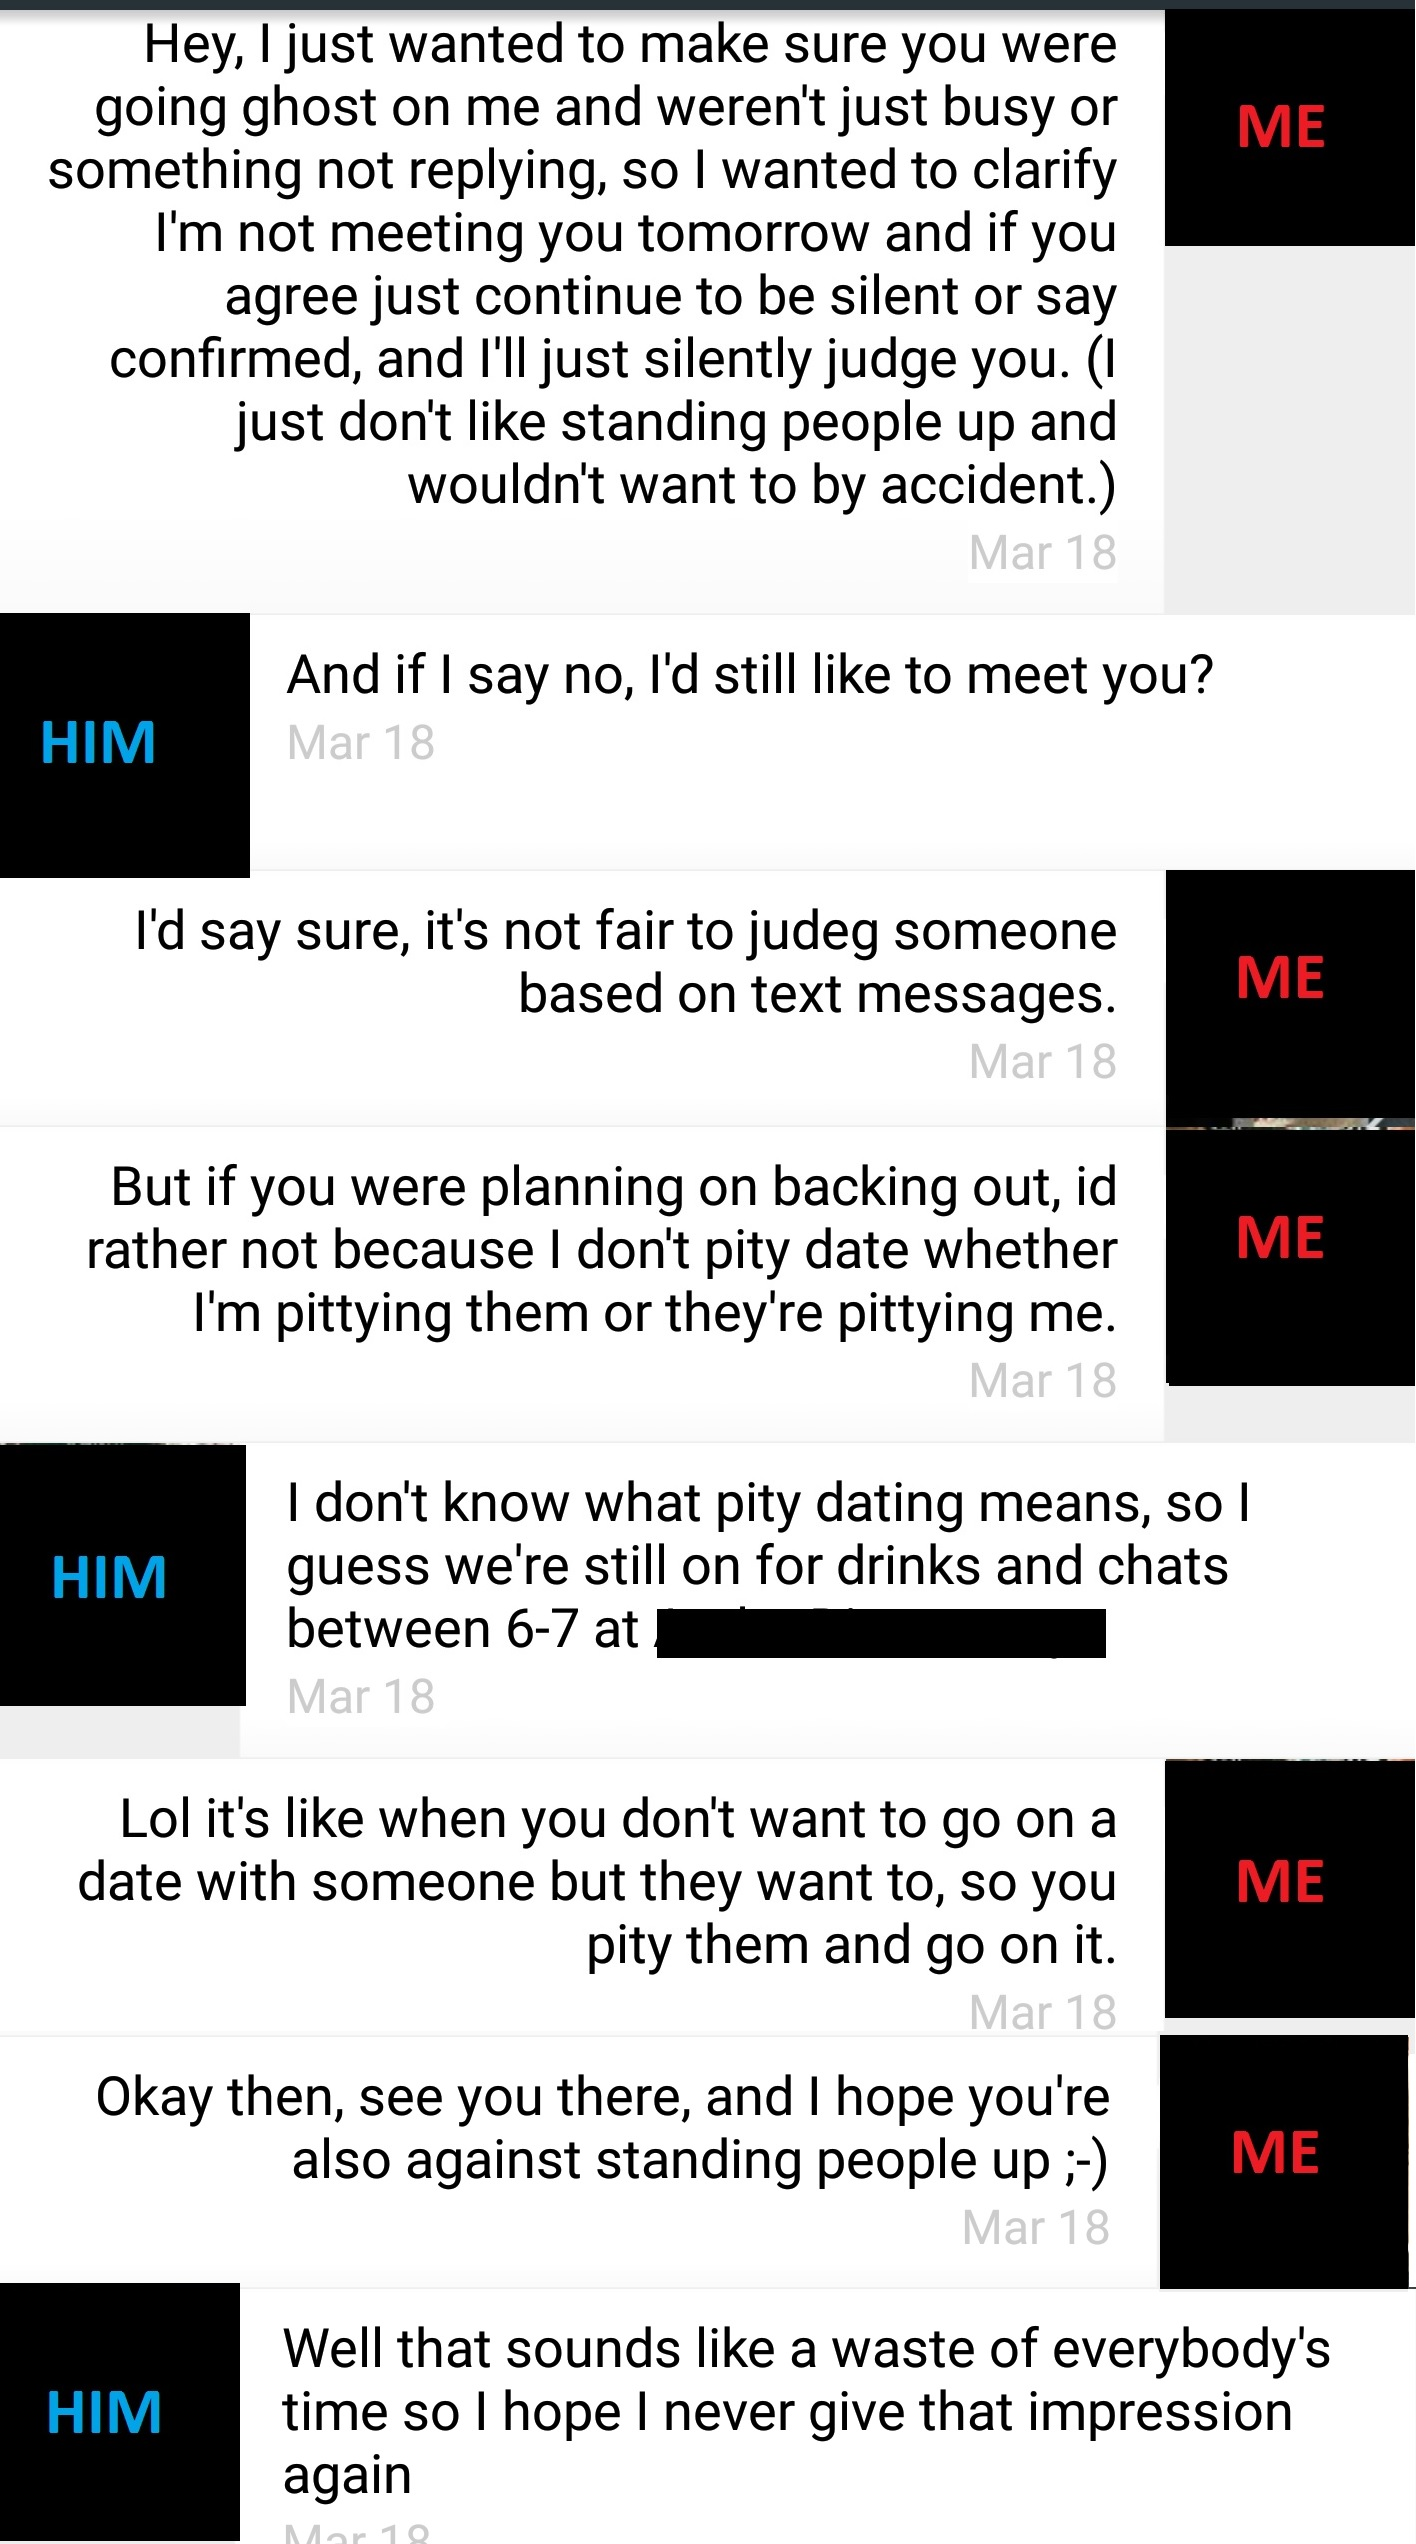 Went on a date but still on dating site